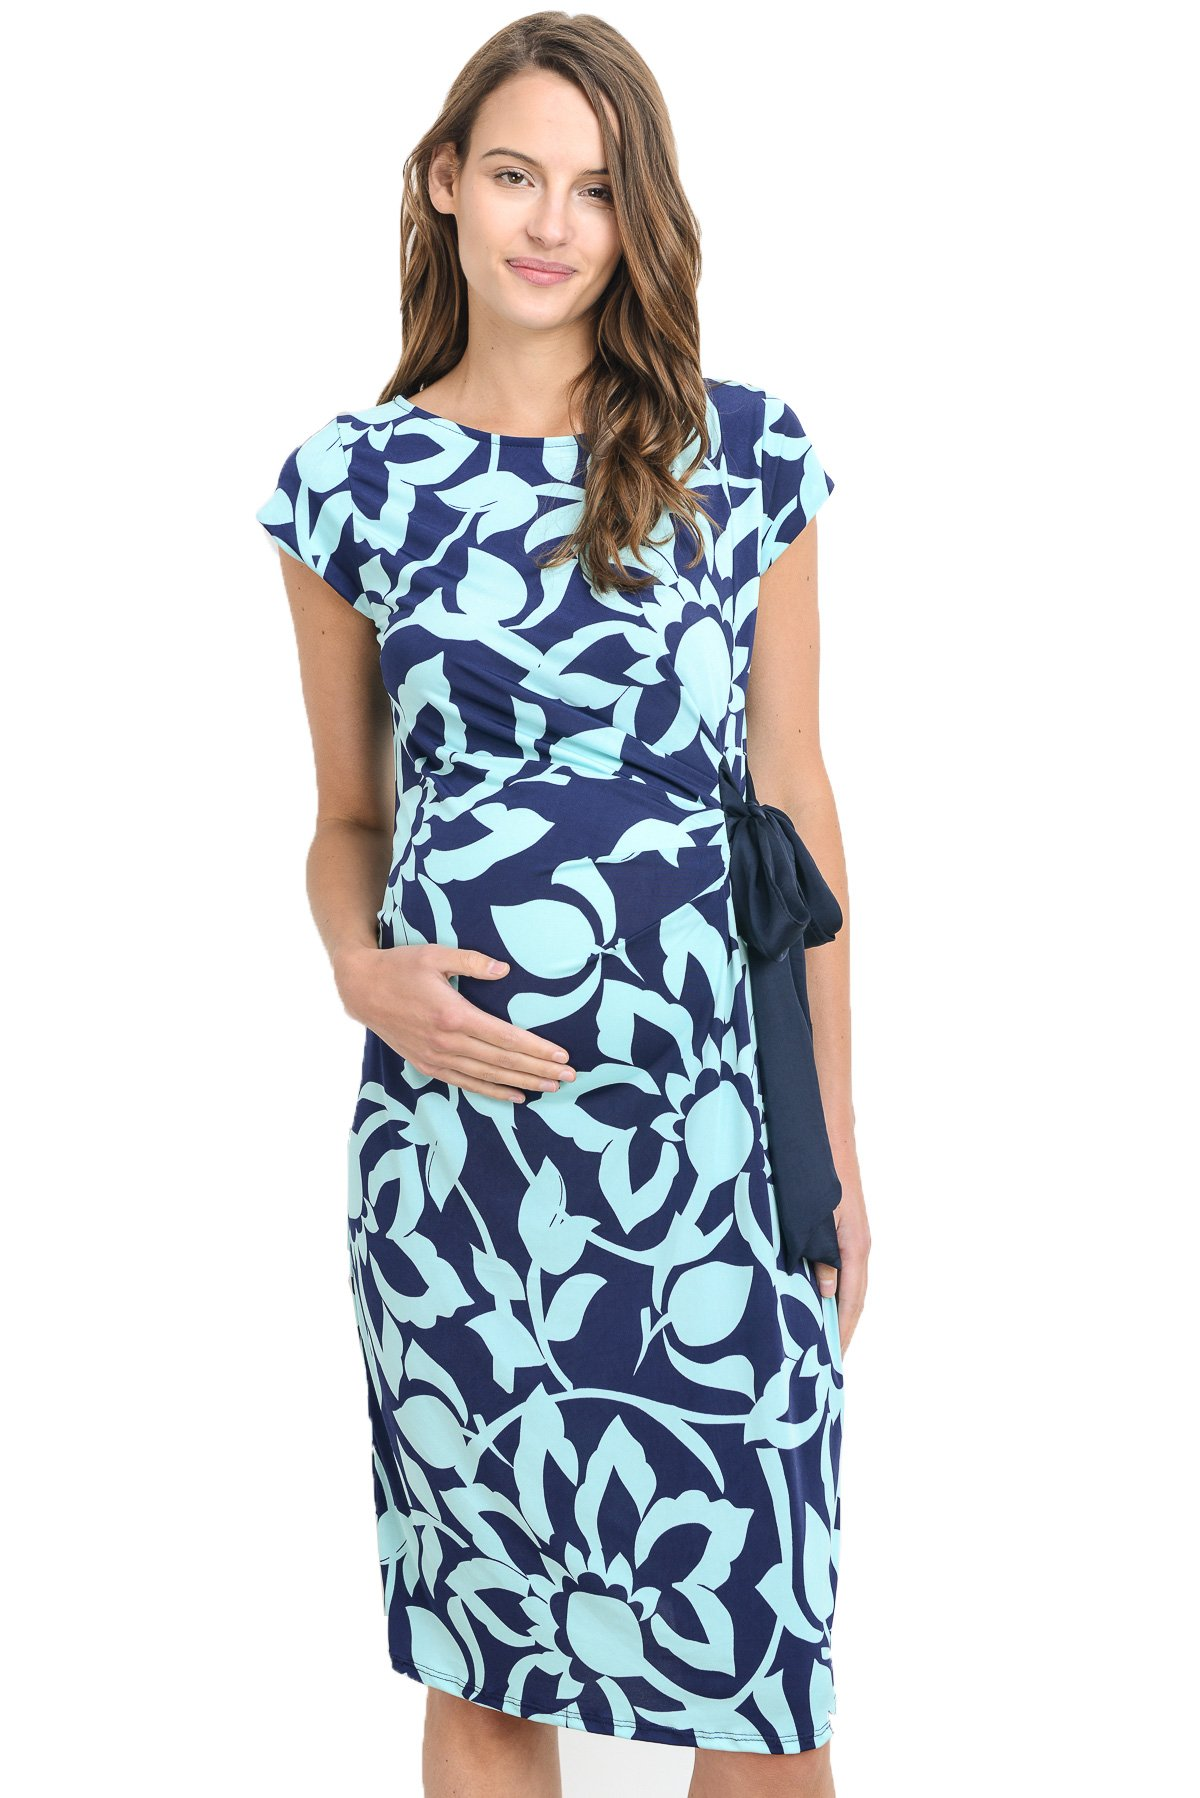 LaClef Women's Adjustable Side Tie Knee Length Printed Short Sleeve Maternity Dress (X-Large, Navy/Mint)